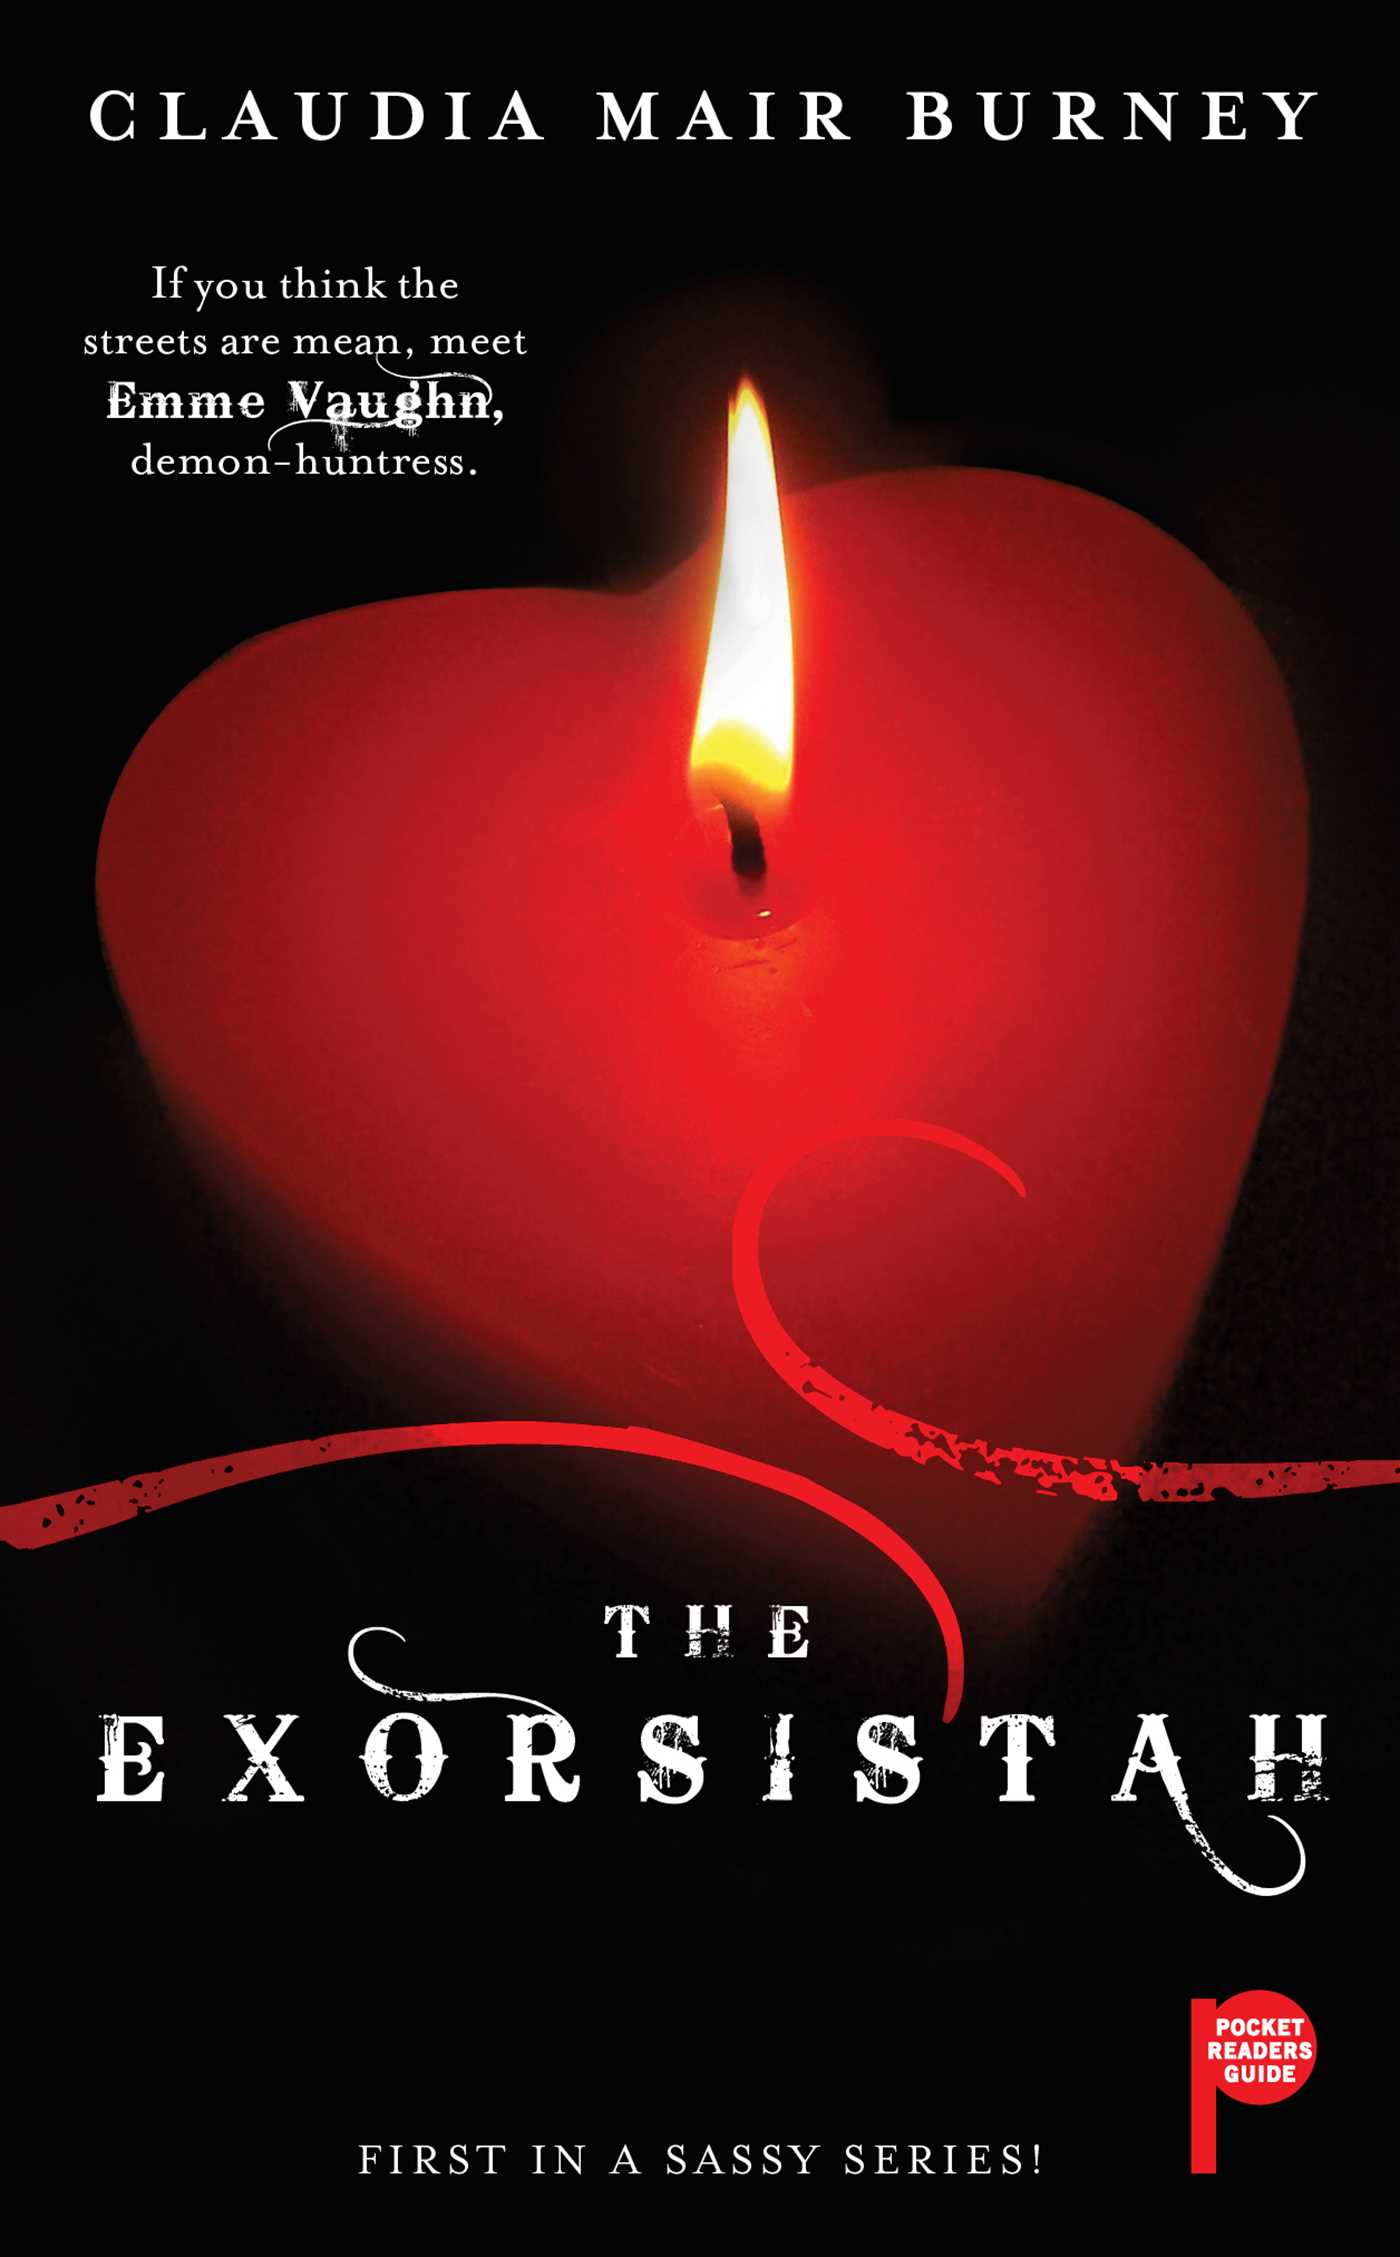 The exorsistah 9781416561712 hr